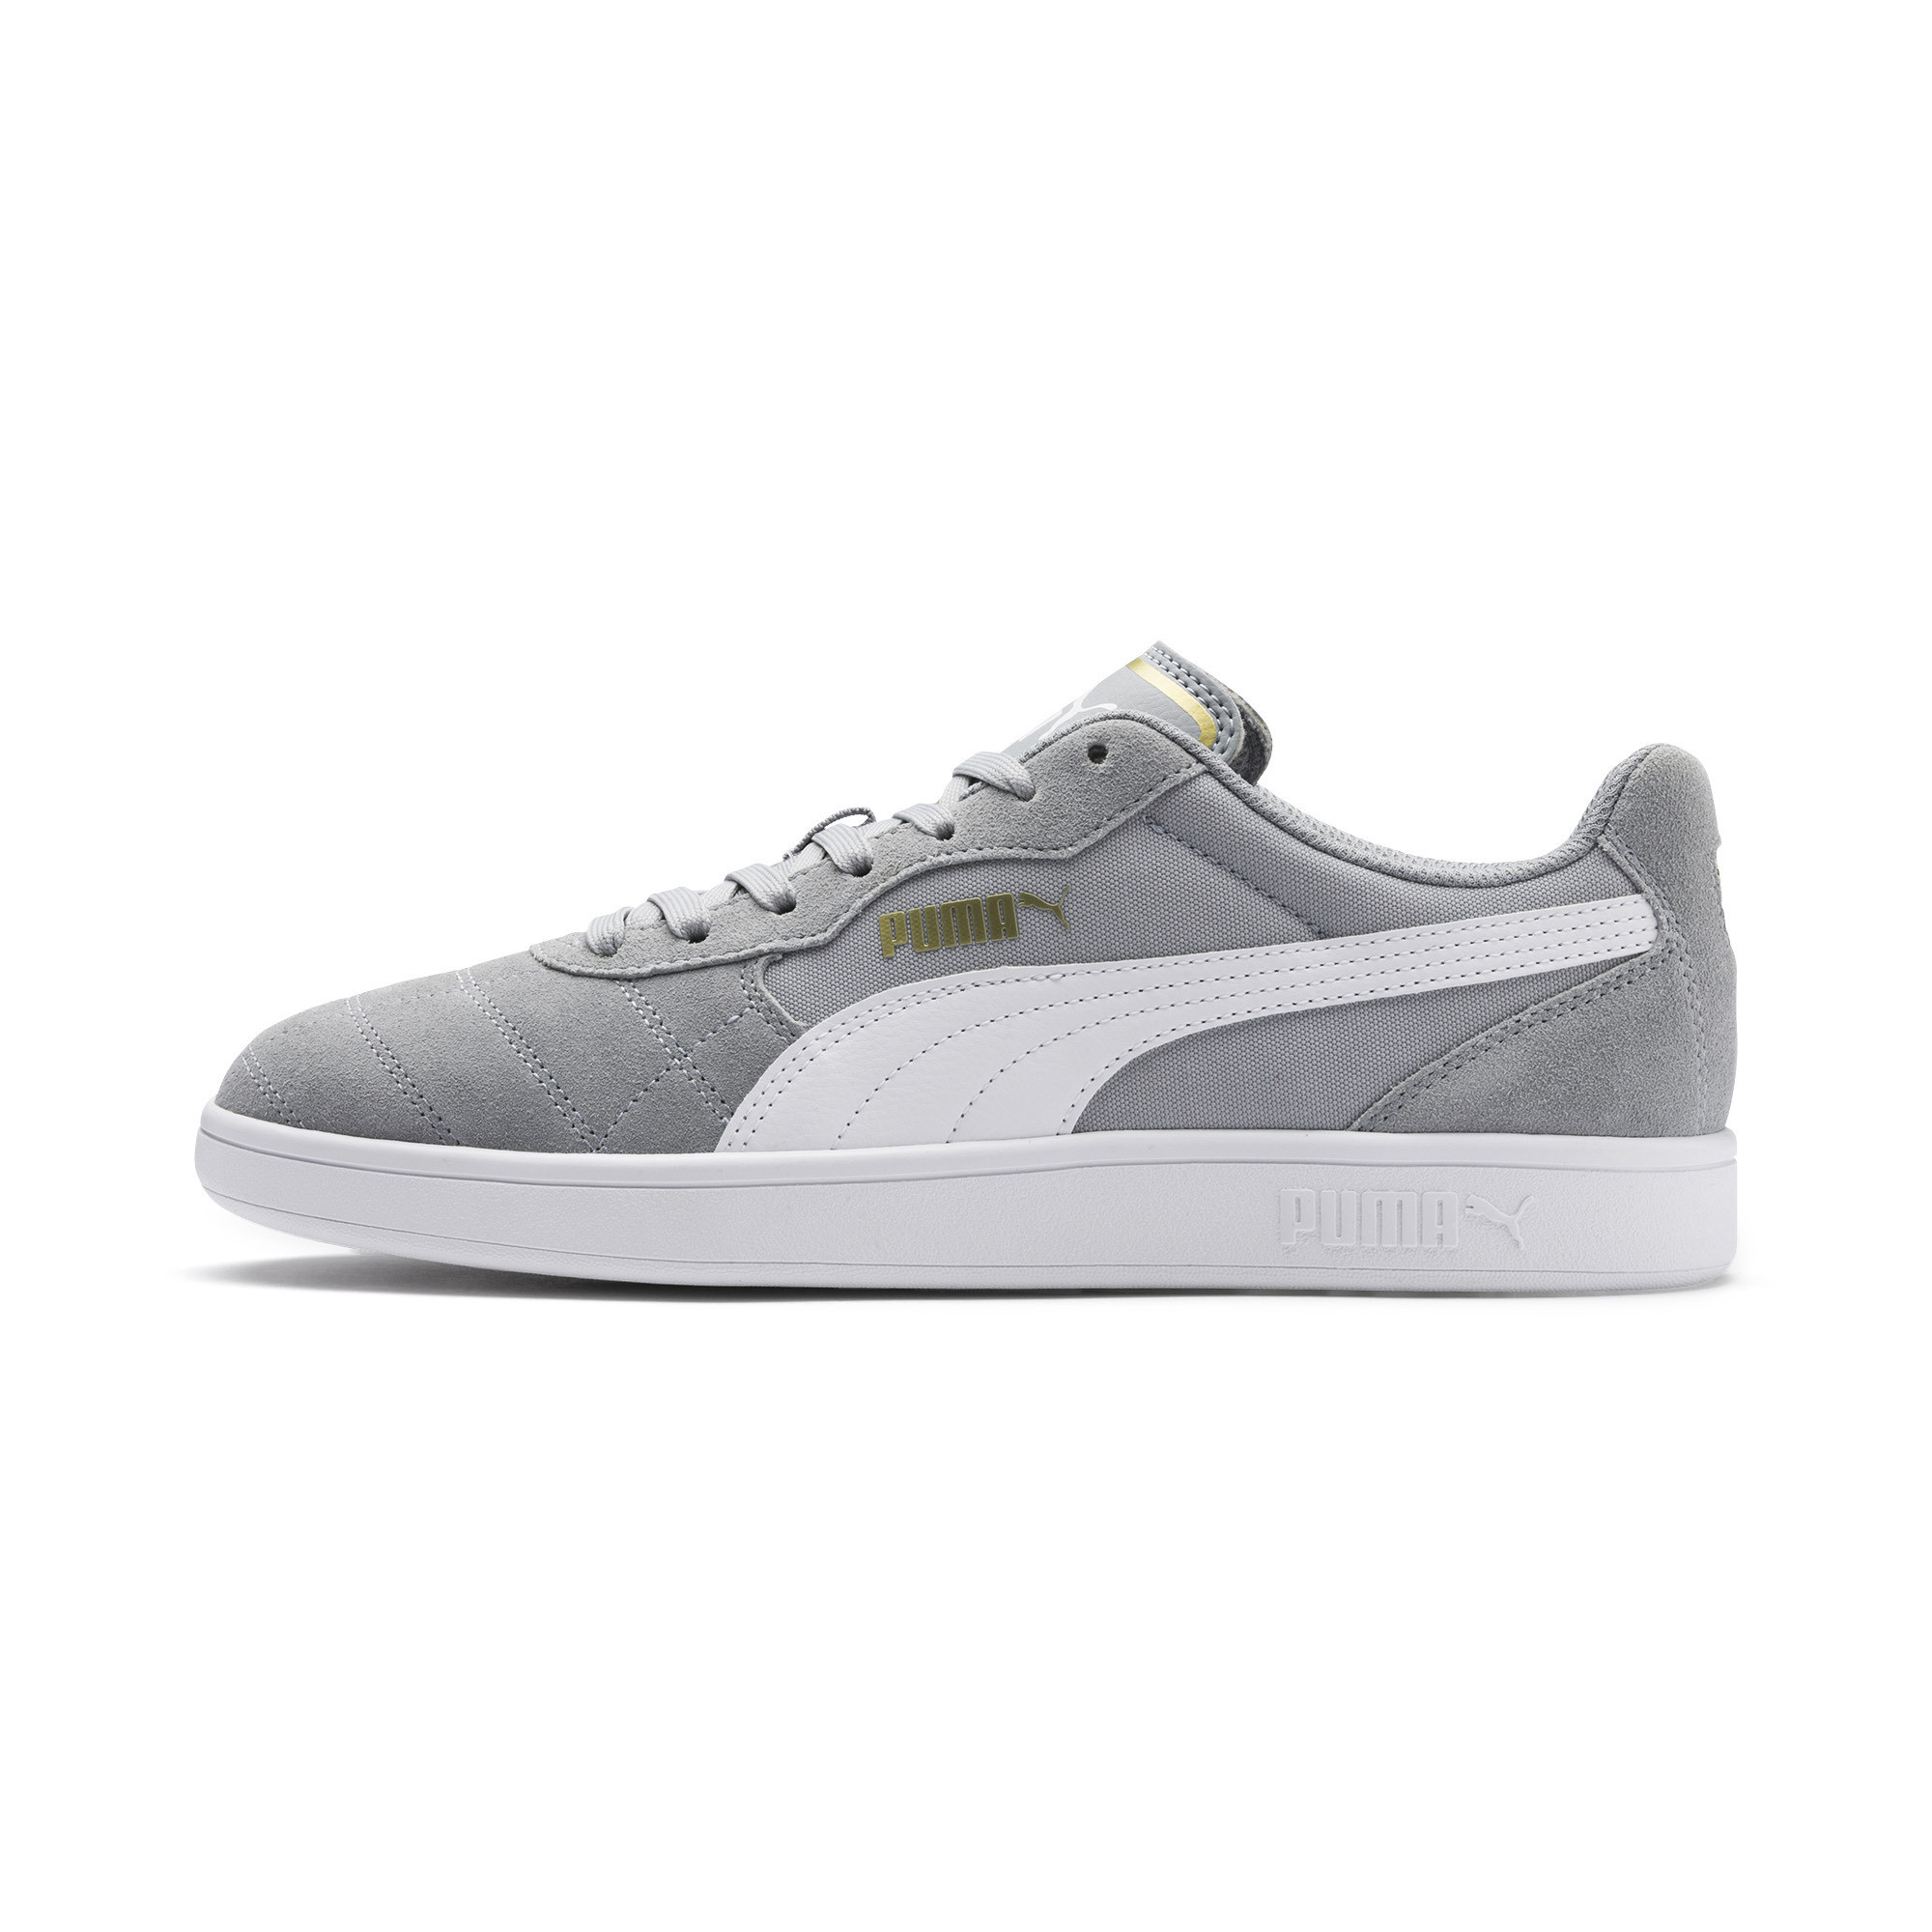 PUMA-Astro-Kick-Sneakers-Men-Shoe-Basics thumbnail 13